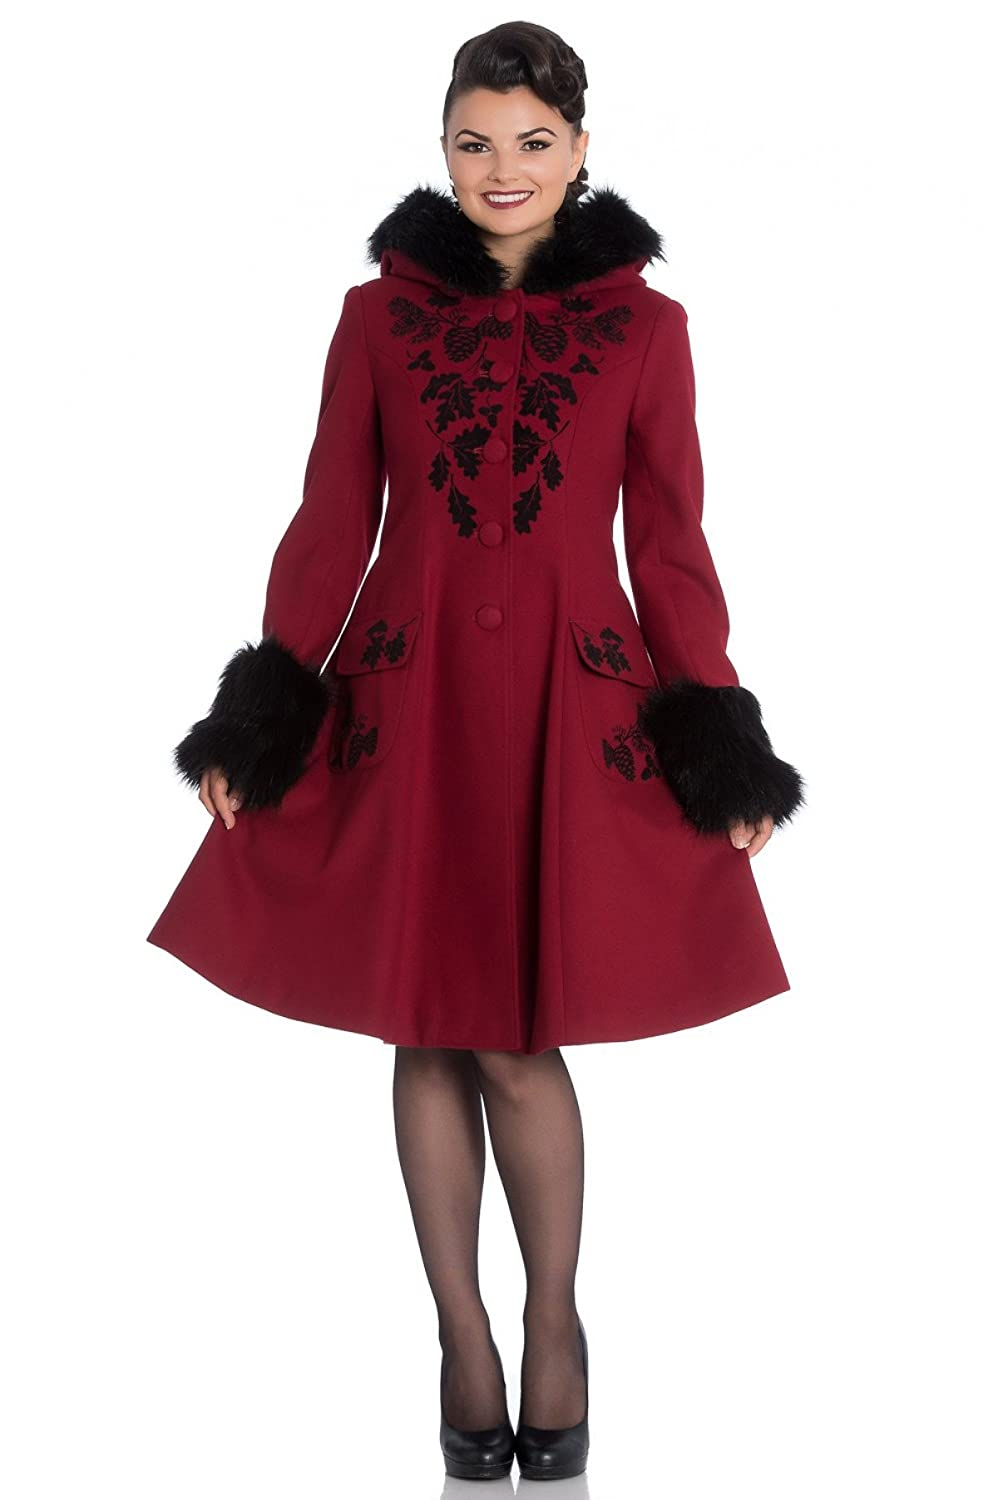 What Did Women Wear in the 1950s? Hell Bunny Sherwood Victorian 3/4 Length Swing Coat Red  AT vintagedancer.com